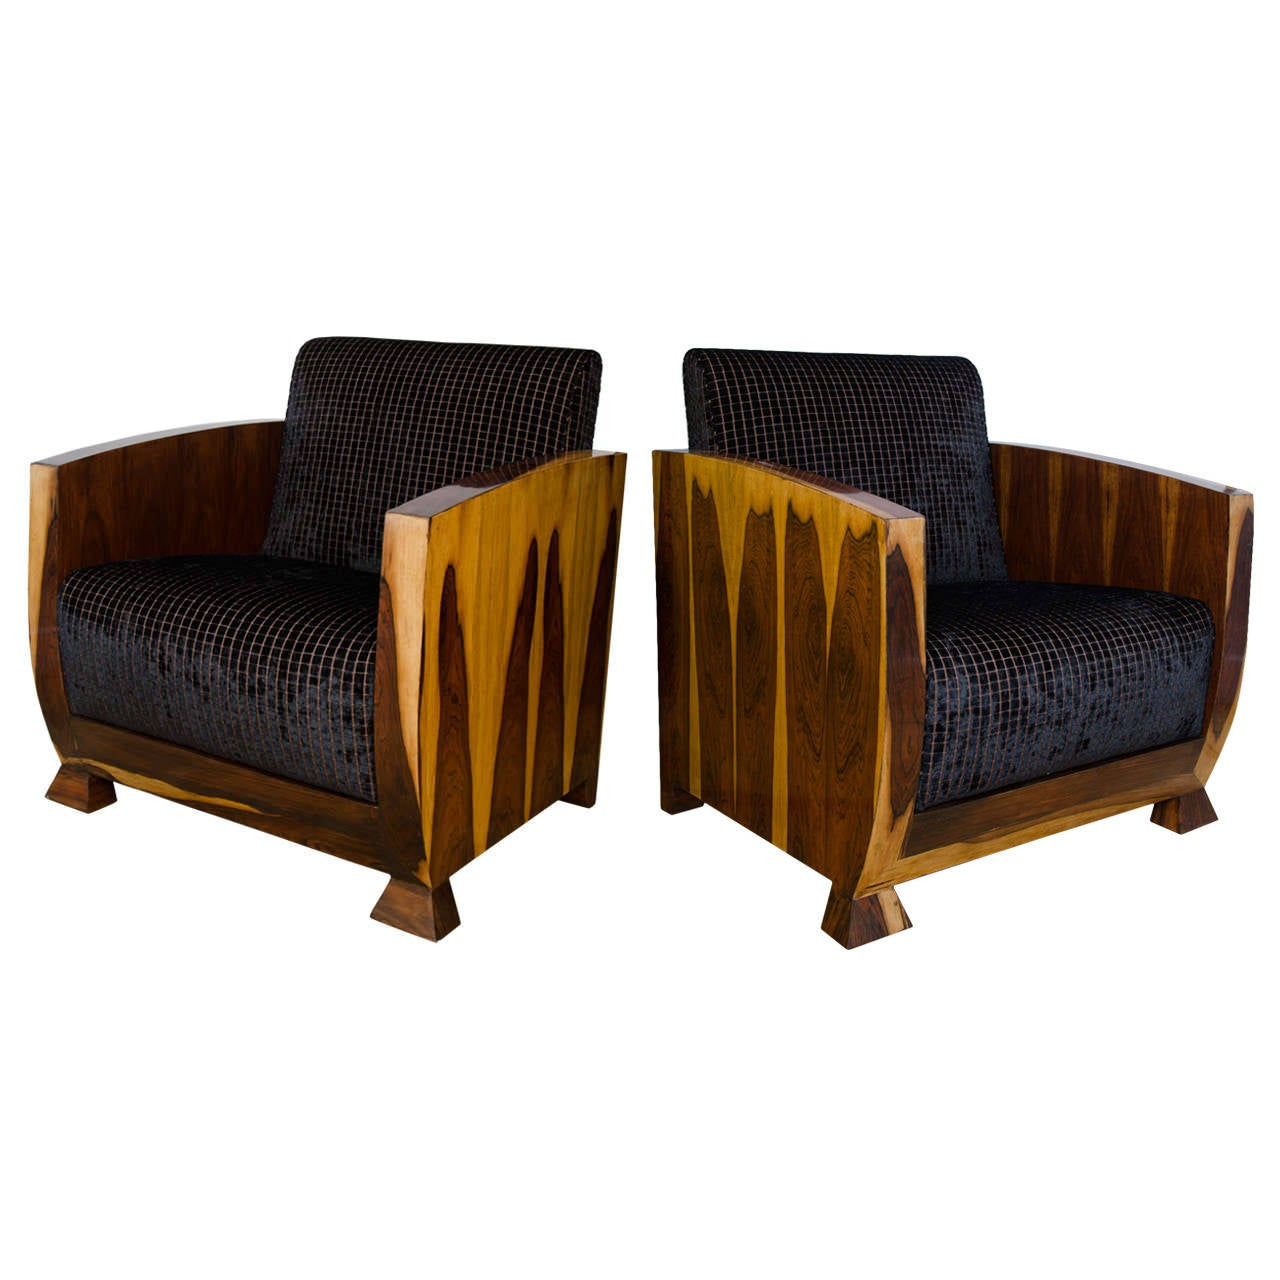 1930s Art Deco Rosewood Pair of Club Chairs Upholstered in Chocolate Brown